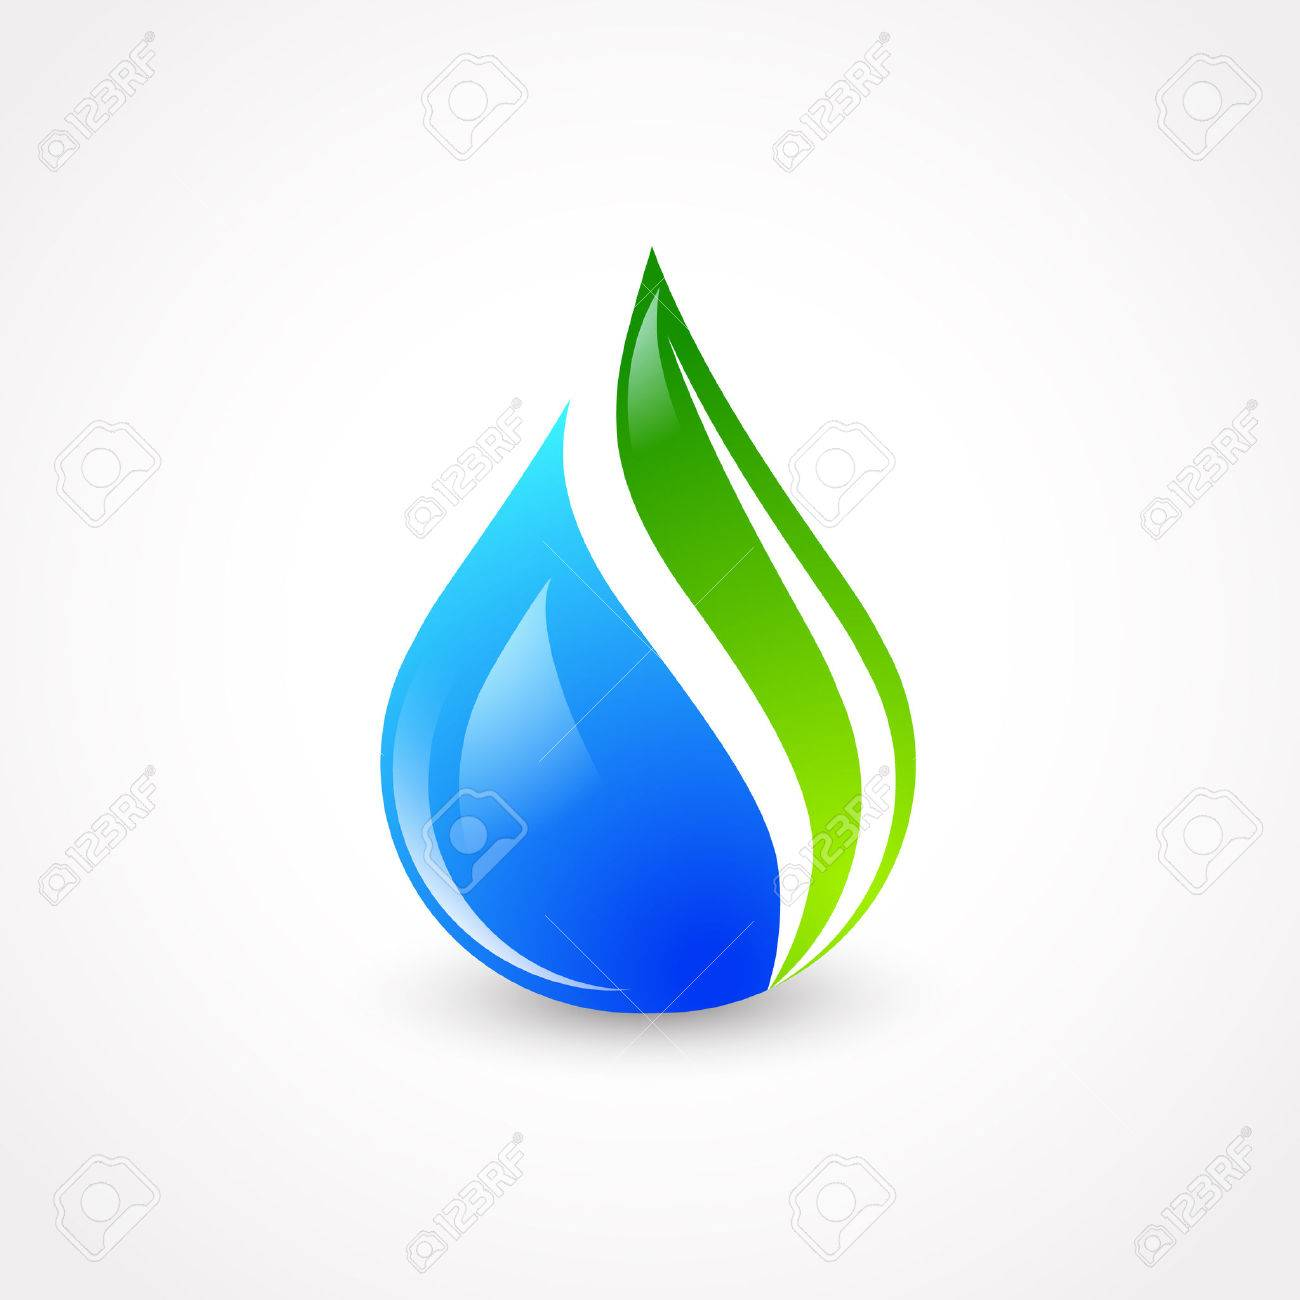 Illustration of Eco Water Drop With Green Leaf - 32054128